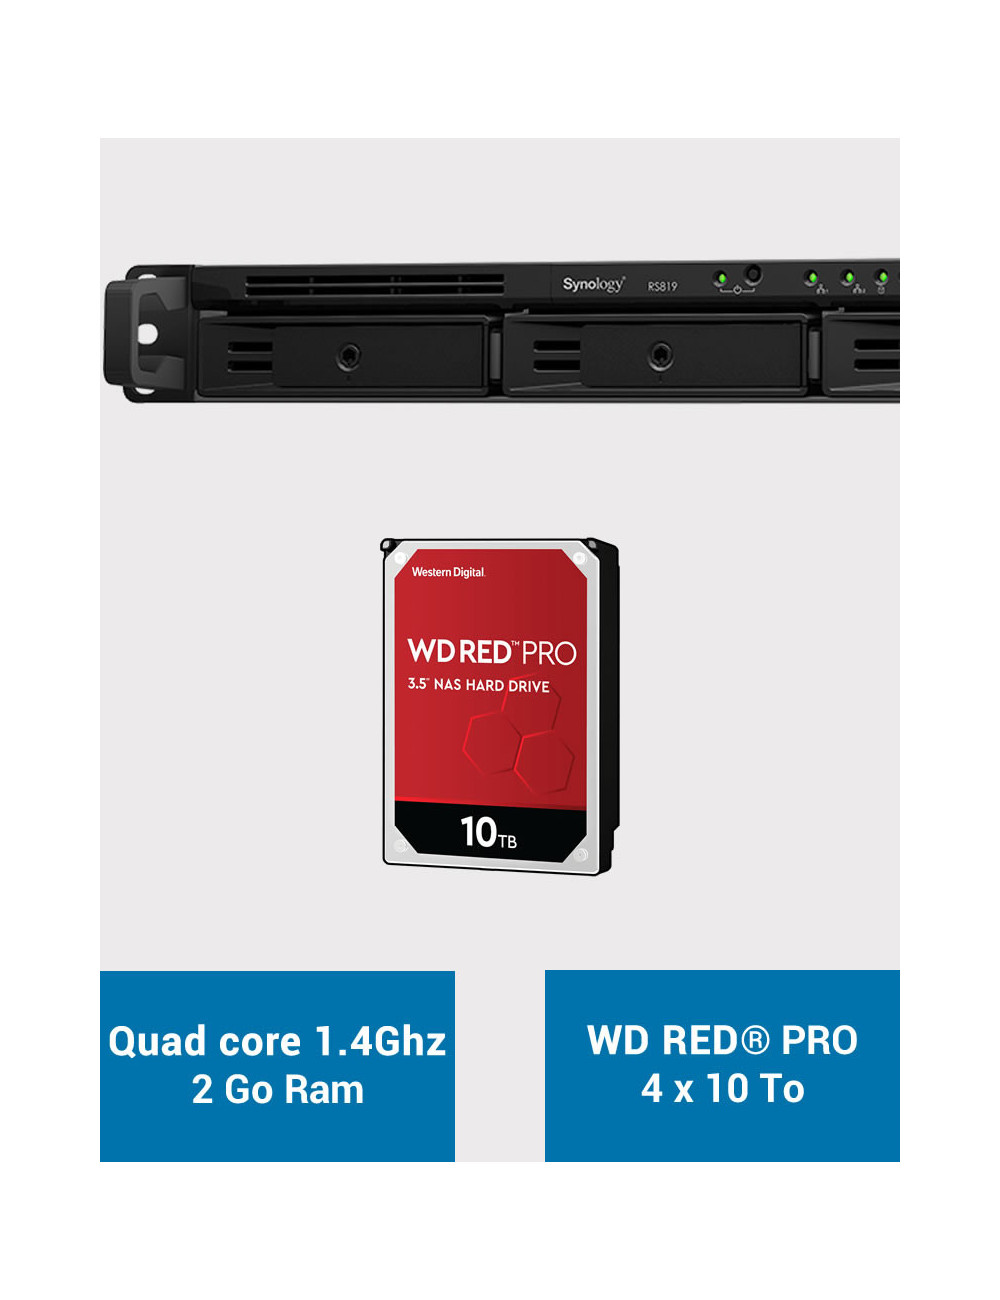 Synology RS819 Serveur NAS WD RED PRO 40To (4x10To)